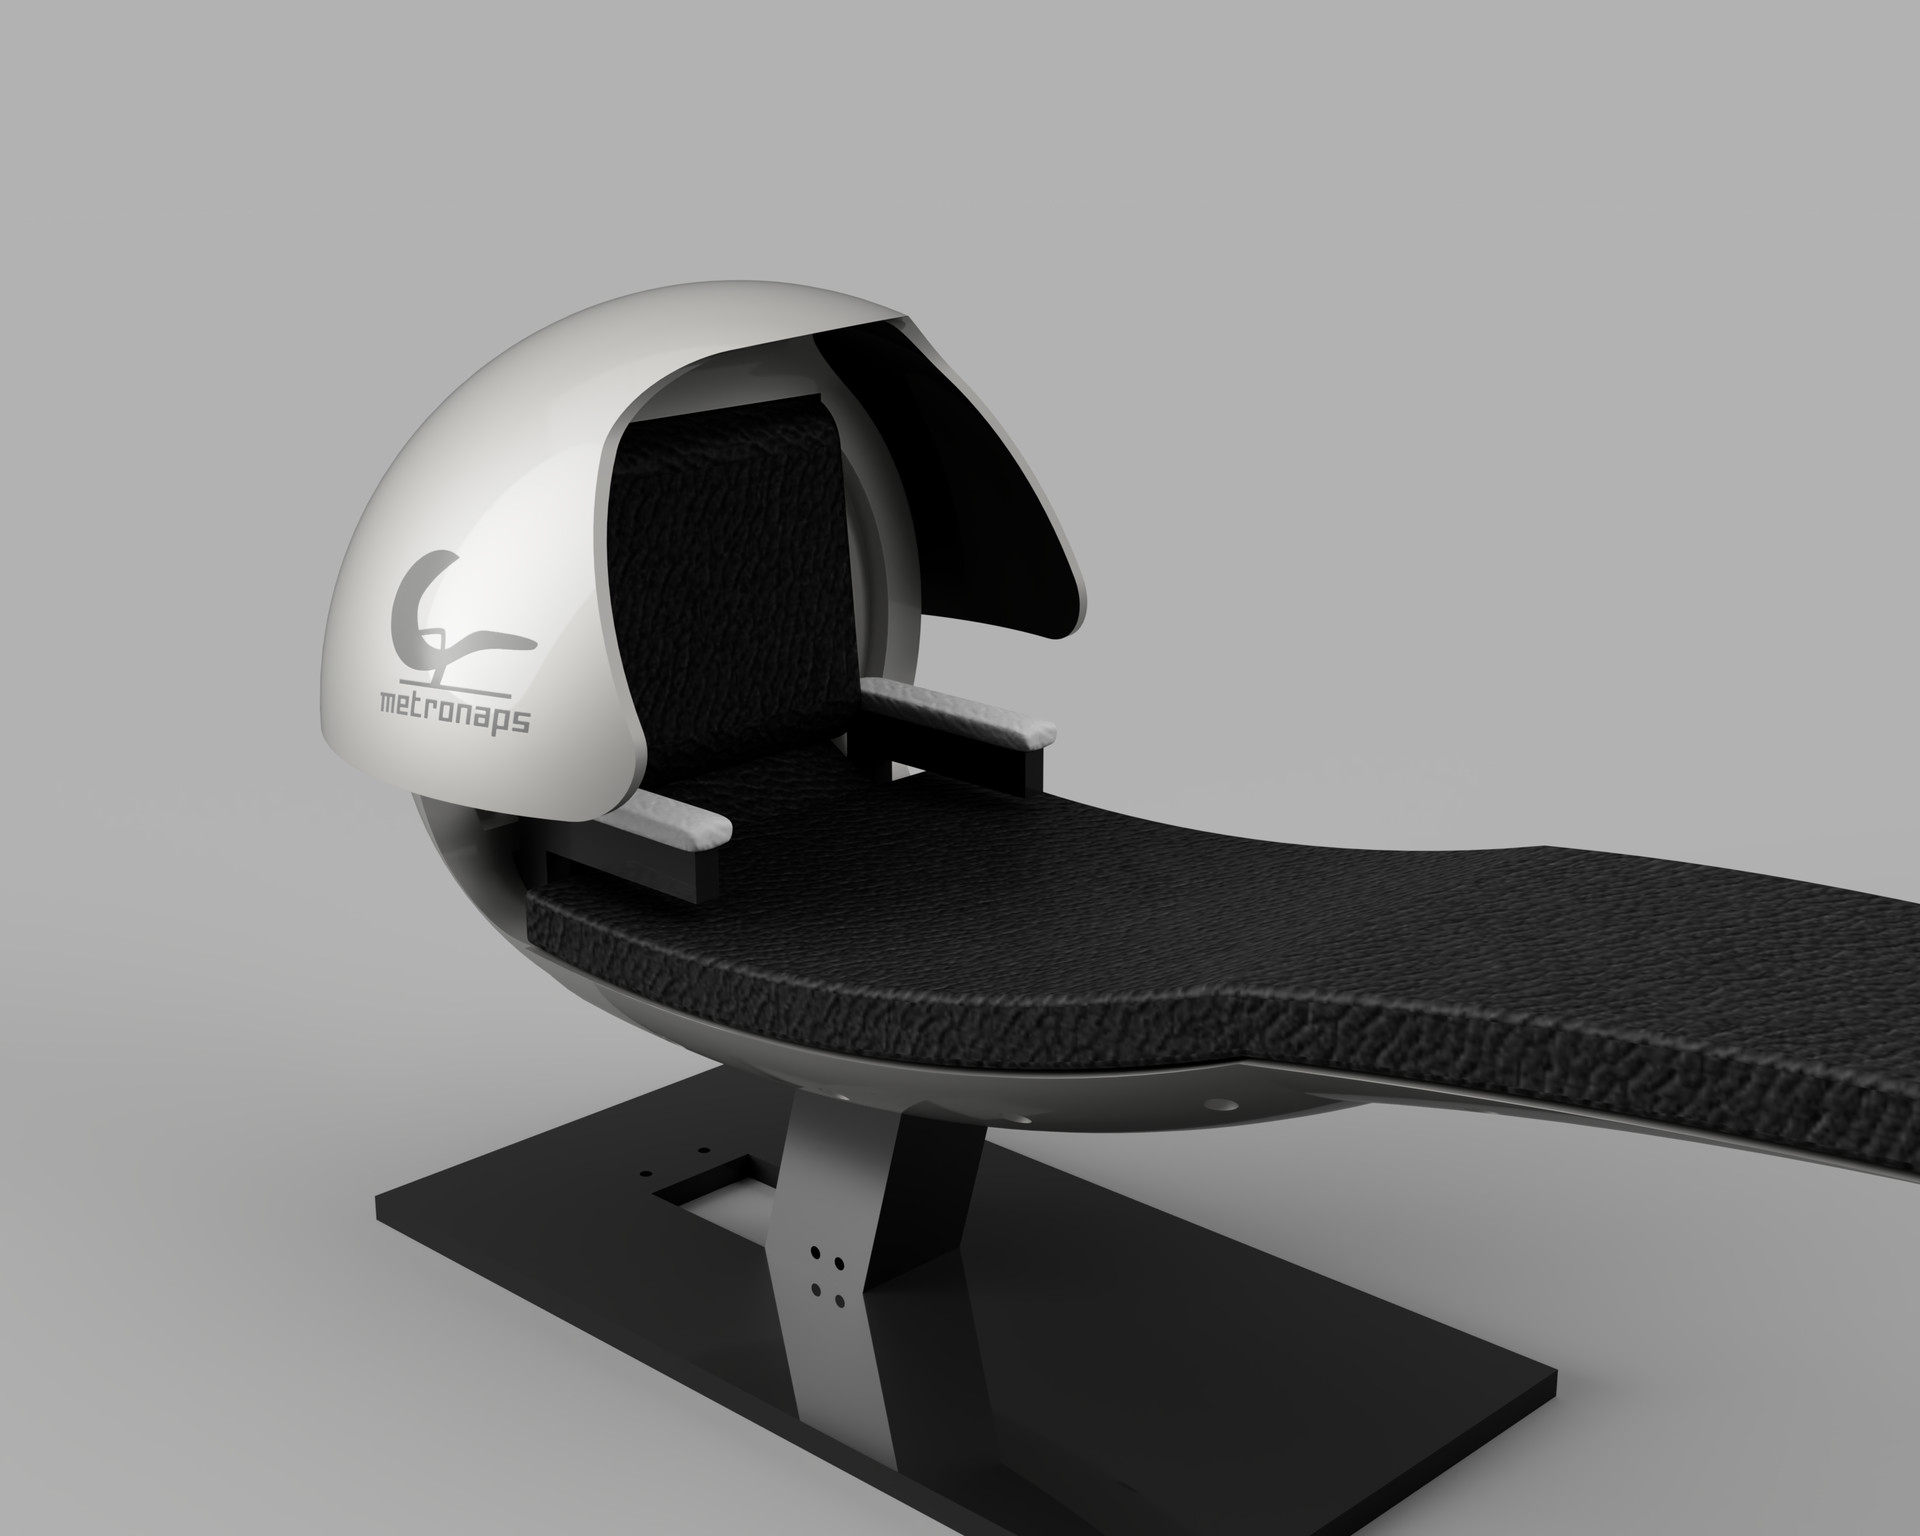 energy pod chair steel design plans tom thomas metronaps 2018 nov 14 07 51 32am 000 customizedview26042027862 png